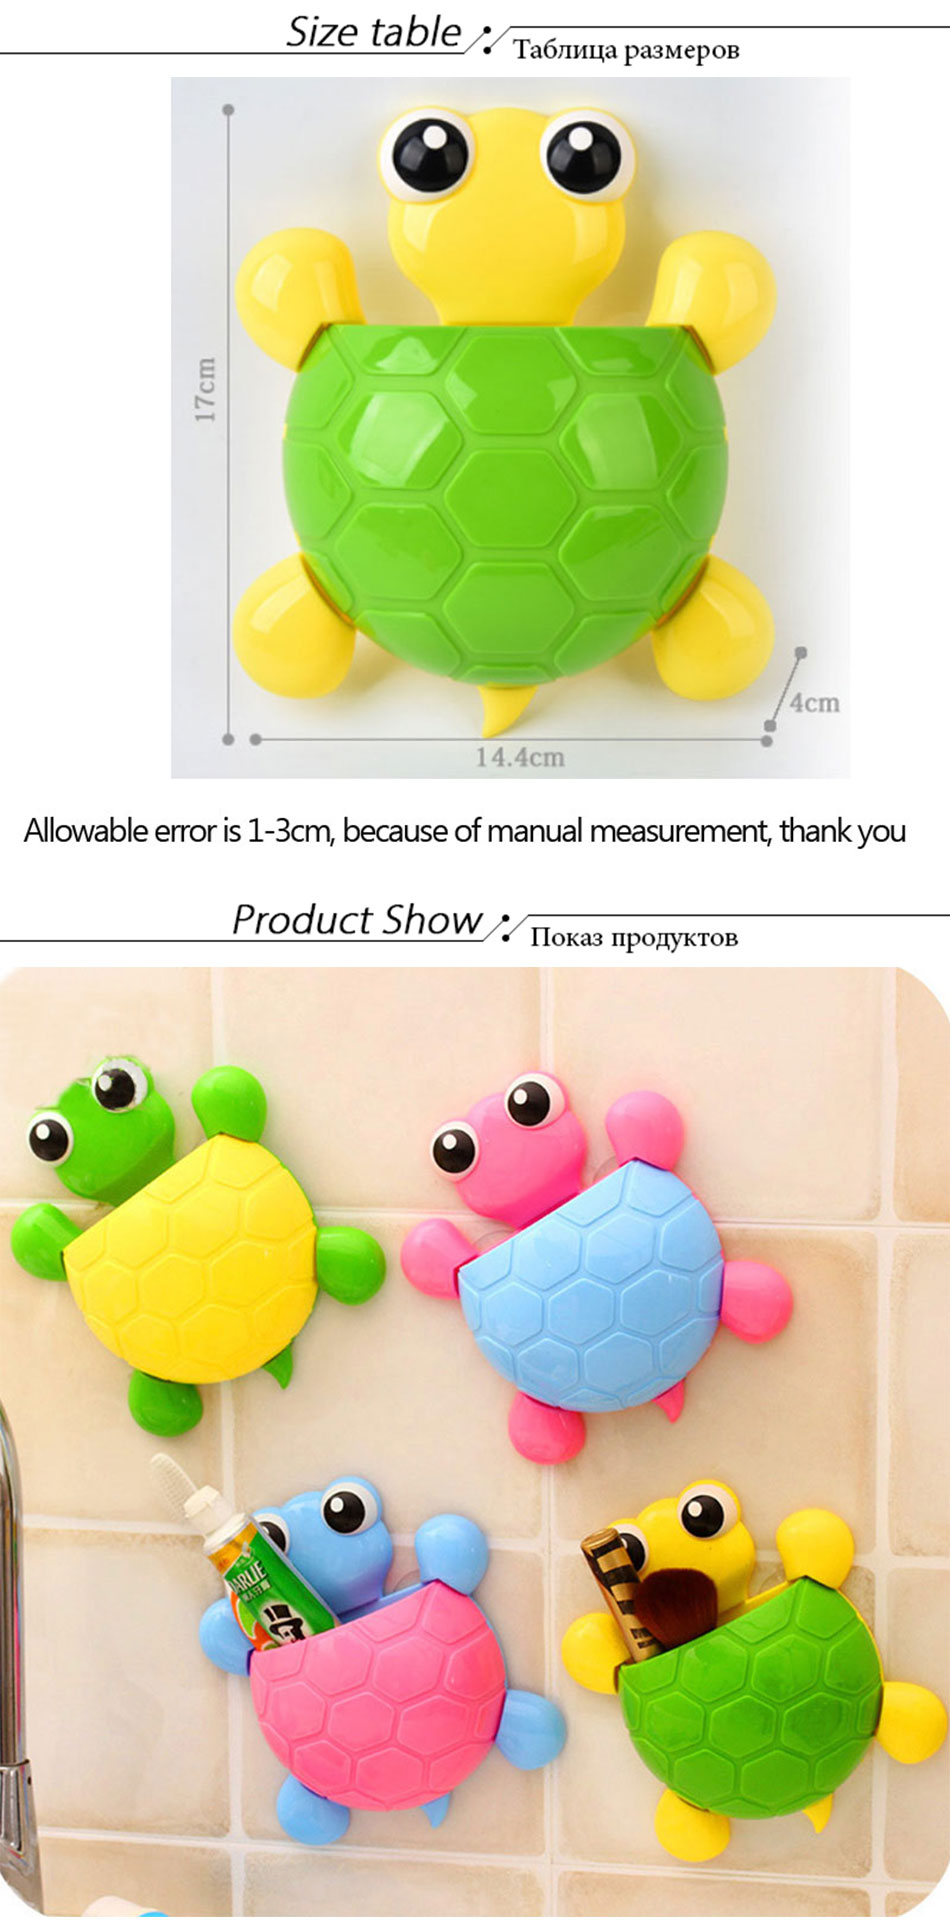 Icosy Cartoon Toothpaste Holder Multifunction Turtle Sucker Hook Toothbrush Holder Cartoon Tortoise Bathroom Accessories